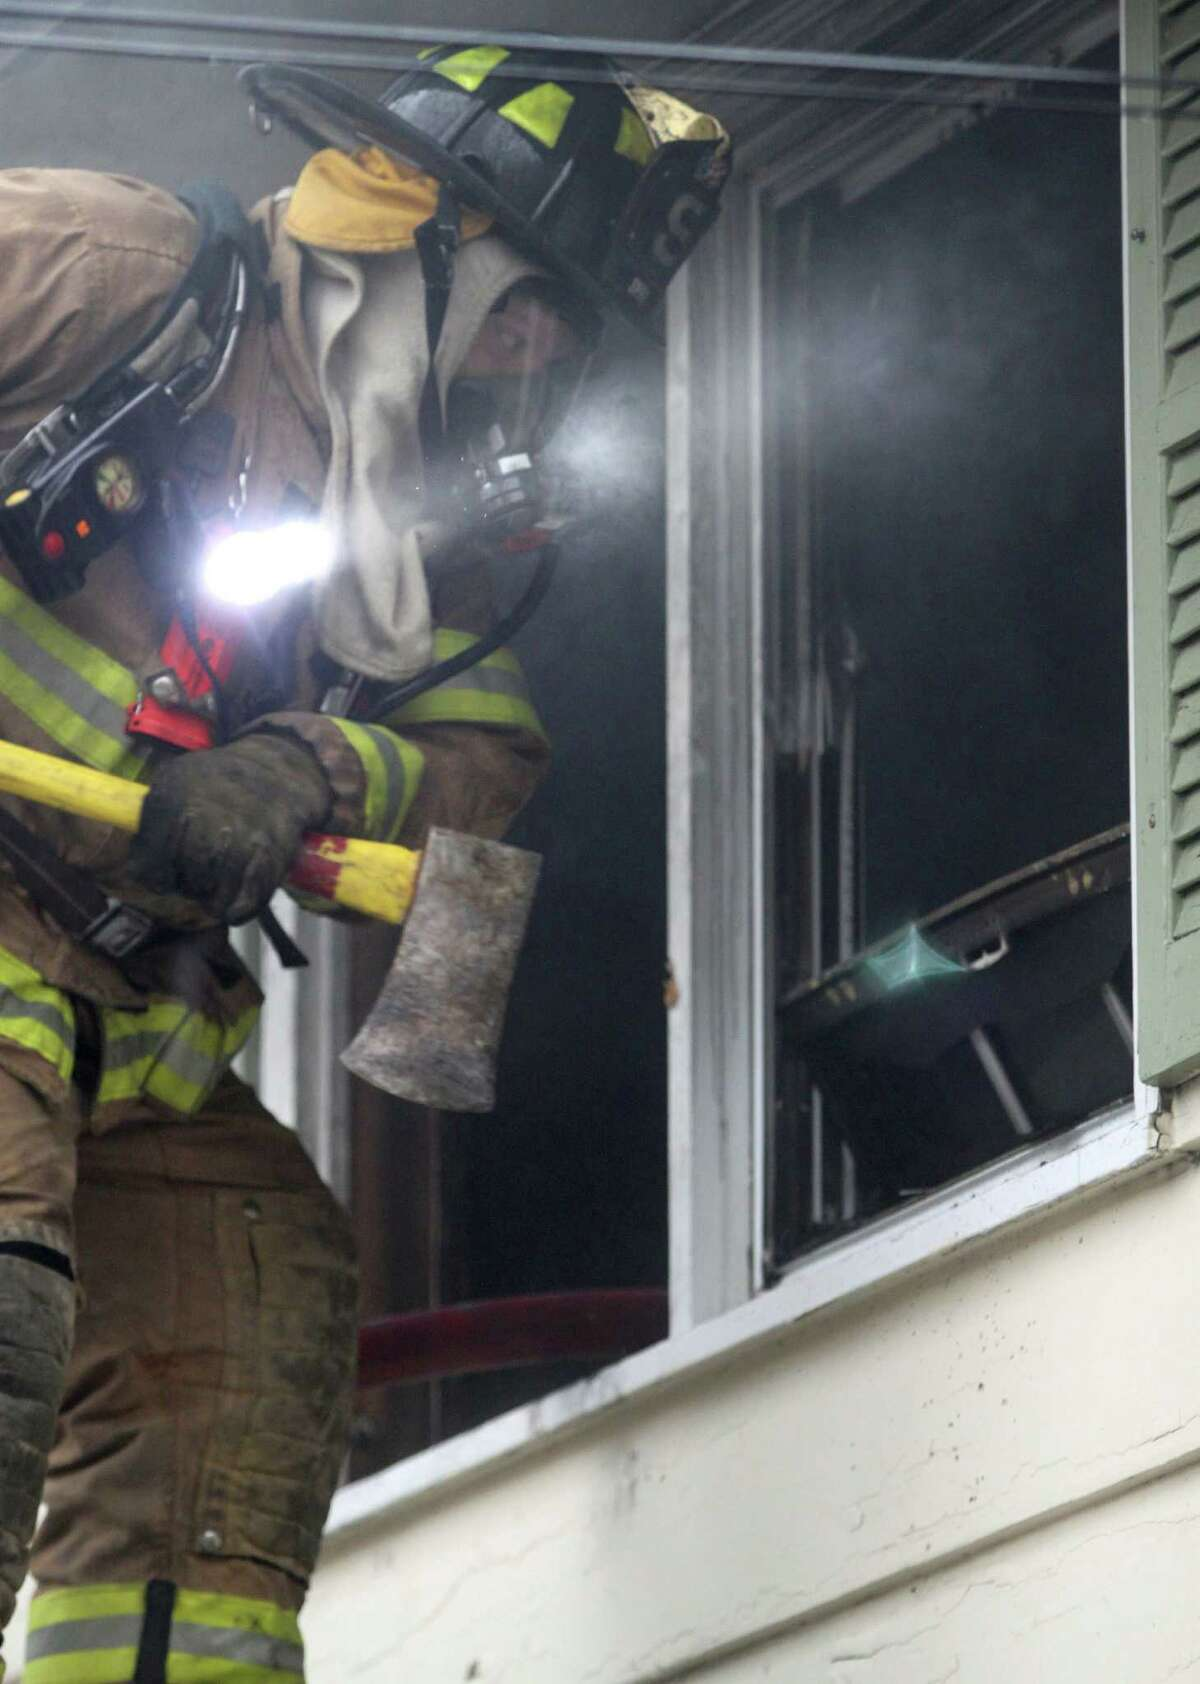 Firefighters work at the scene of a fire on Summit Ridge Road the morning of Saturday, April 26, 2014.